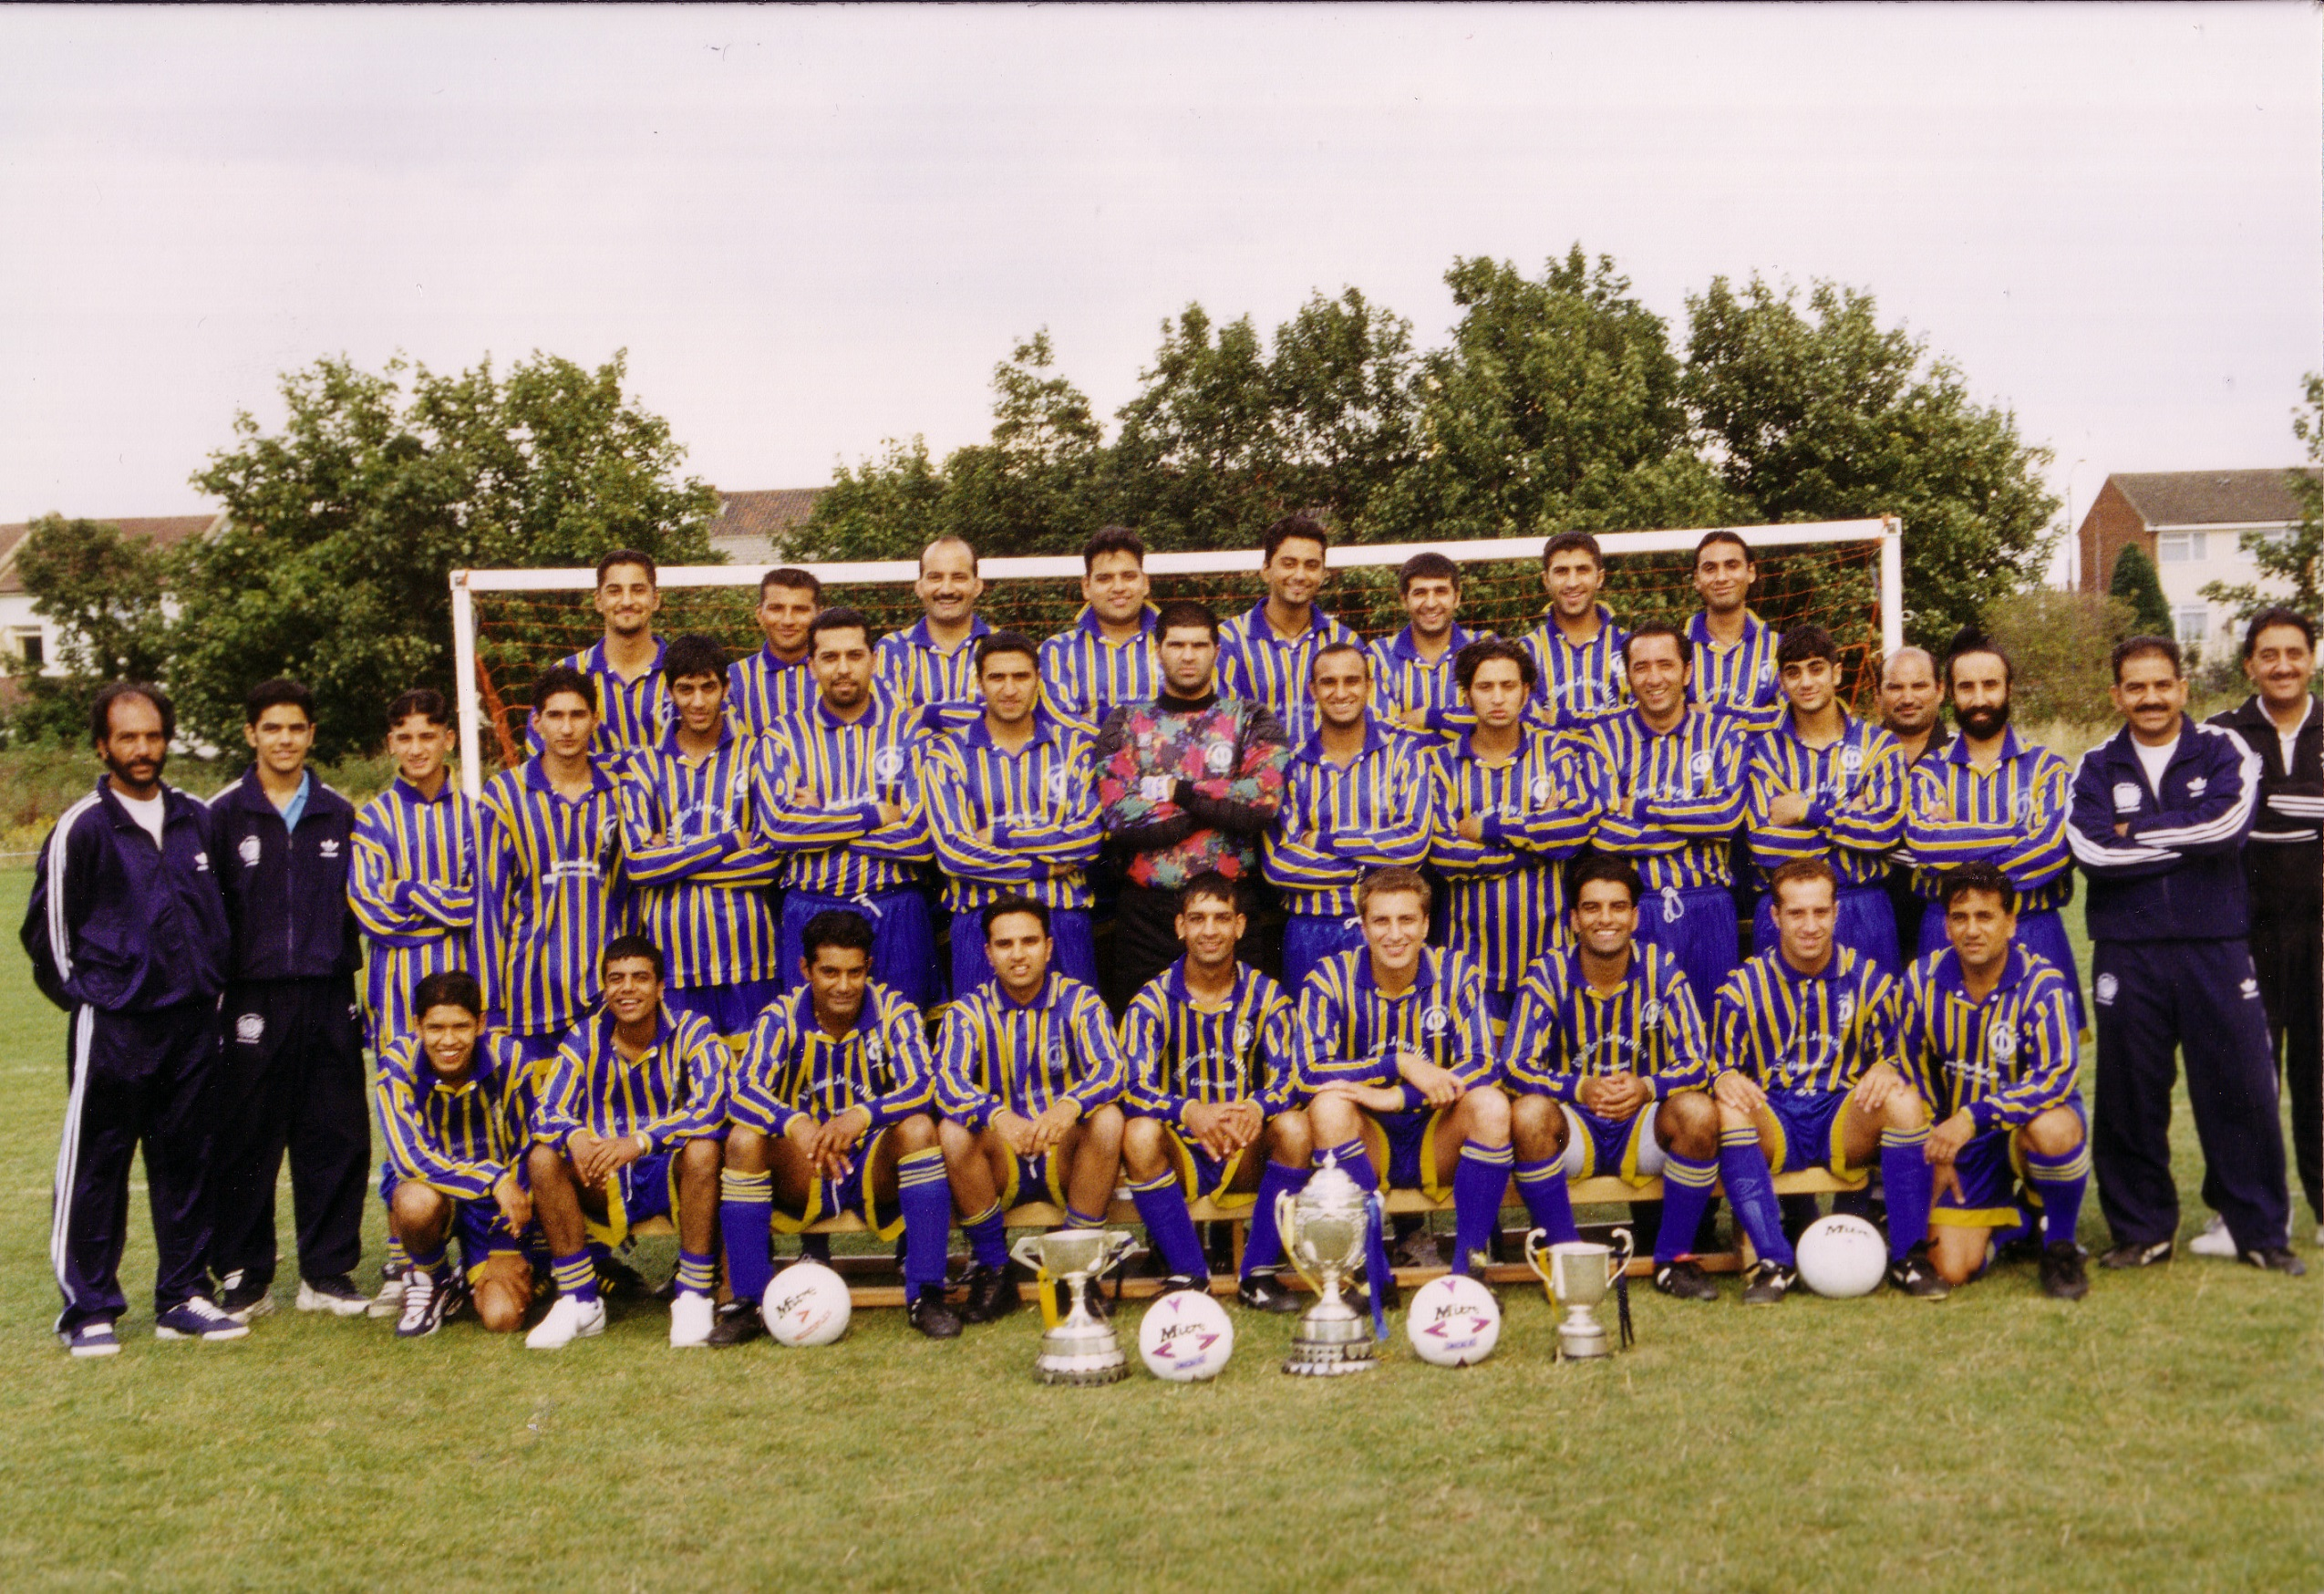 Saturday A and B Squad photo 1995/1996 Season